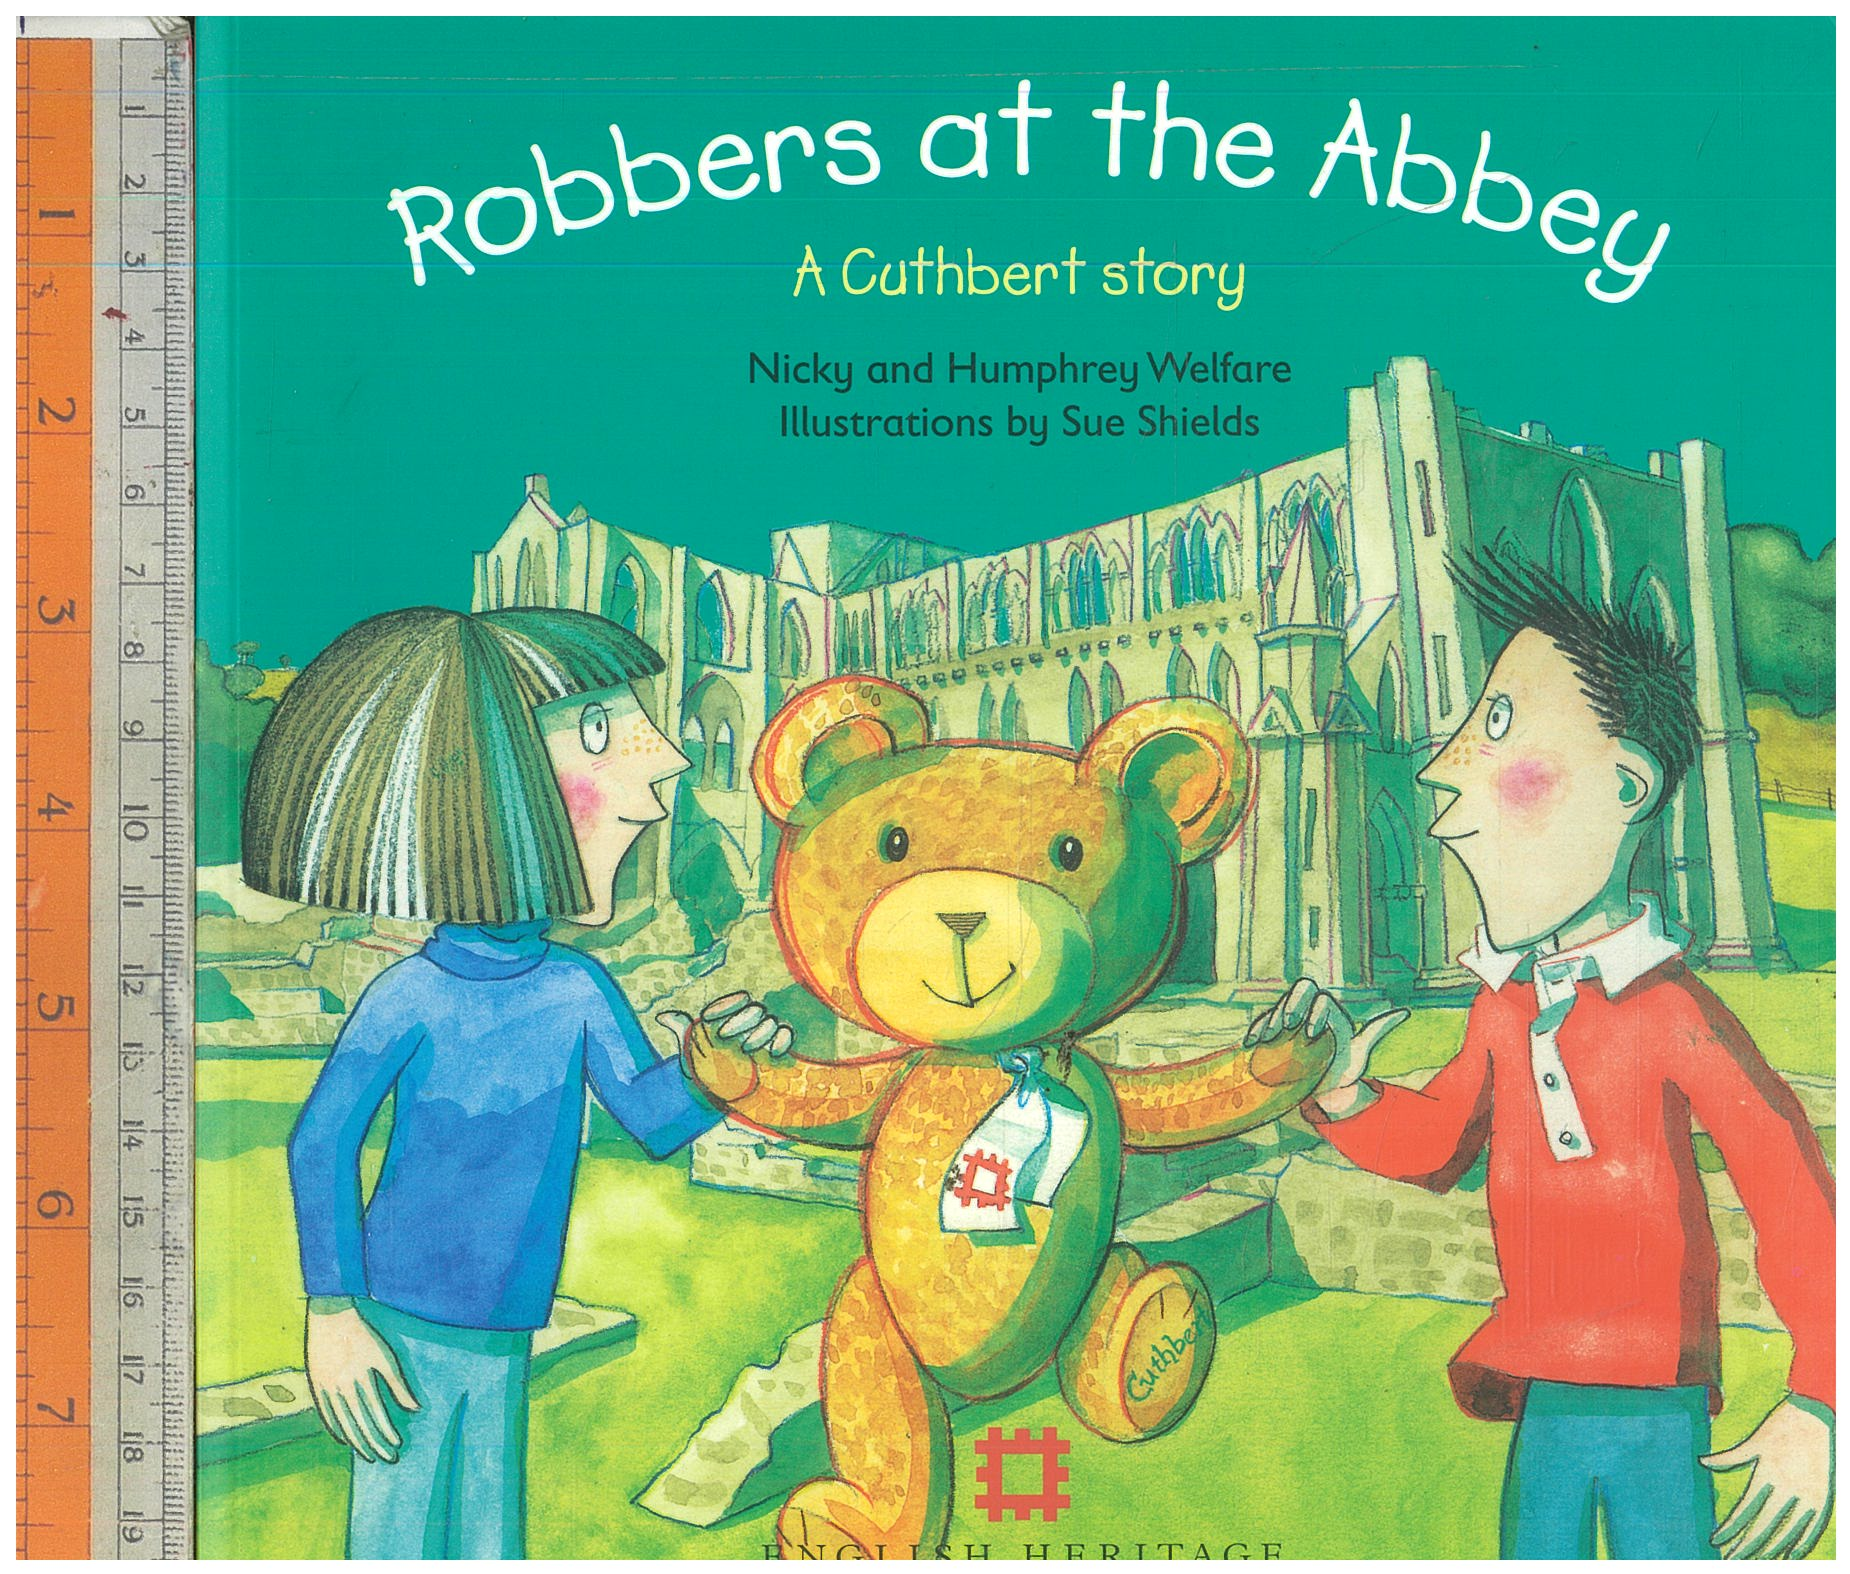 Robbers at the Abbey